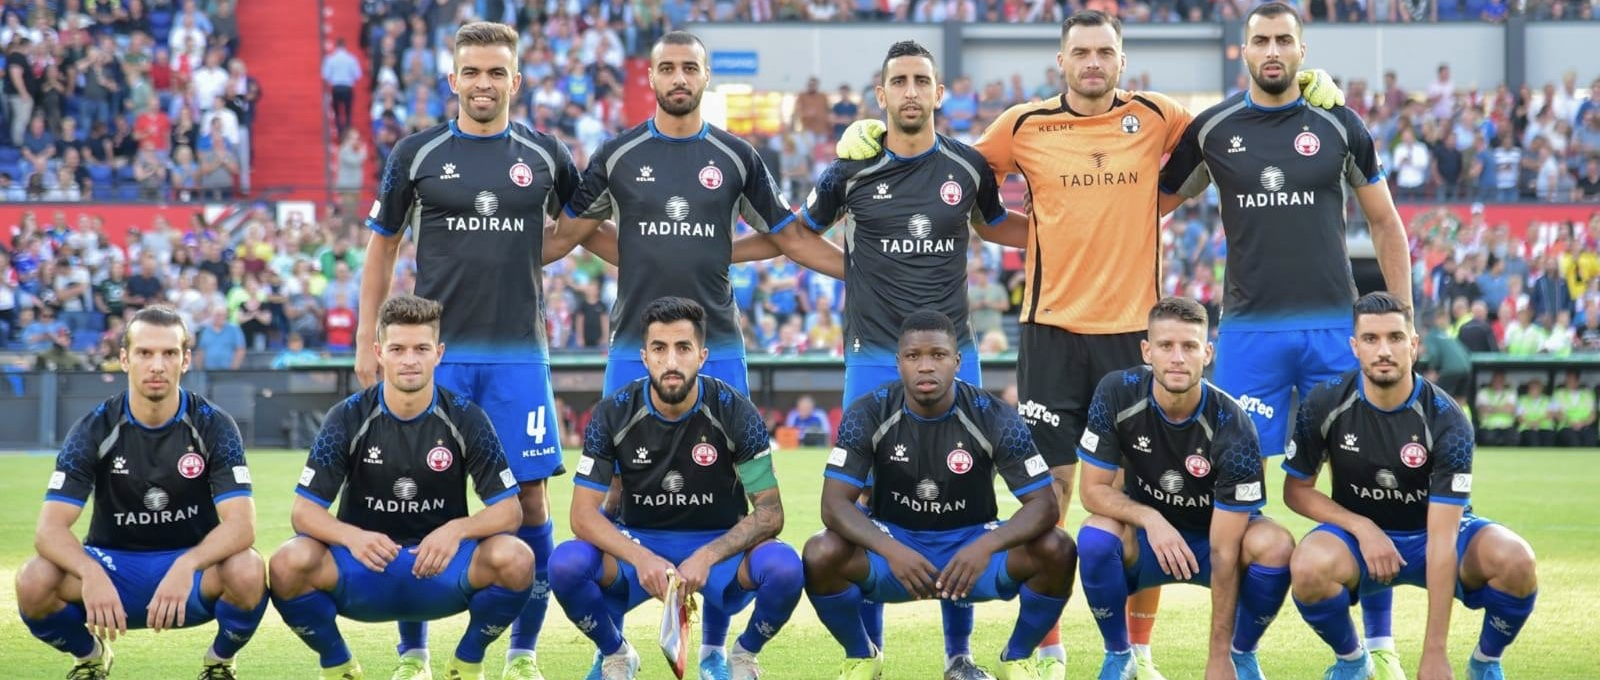 Not Fer – Beer Sheva falls to Feyenoord, Bnei Yehuda goes down to Malmo in Europa League Playoff Action & More! Israel Sports Rabbi Rundown August 22, 2019